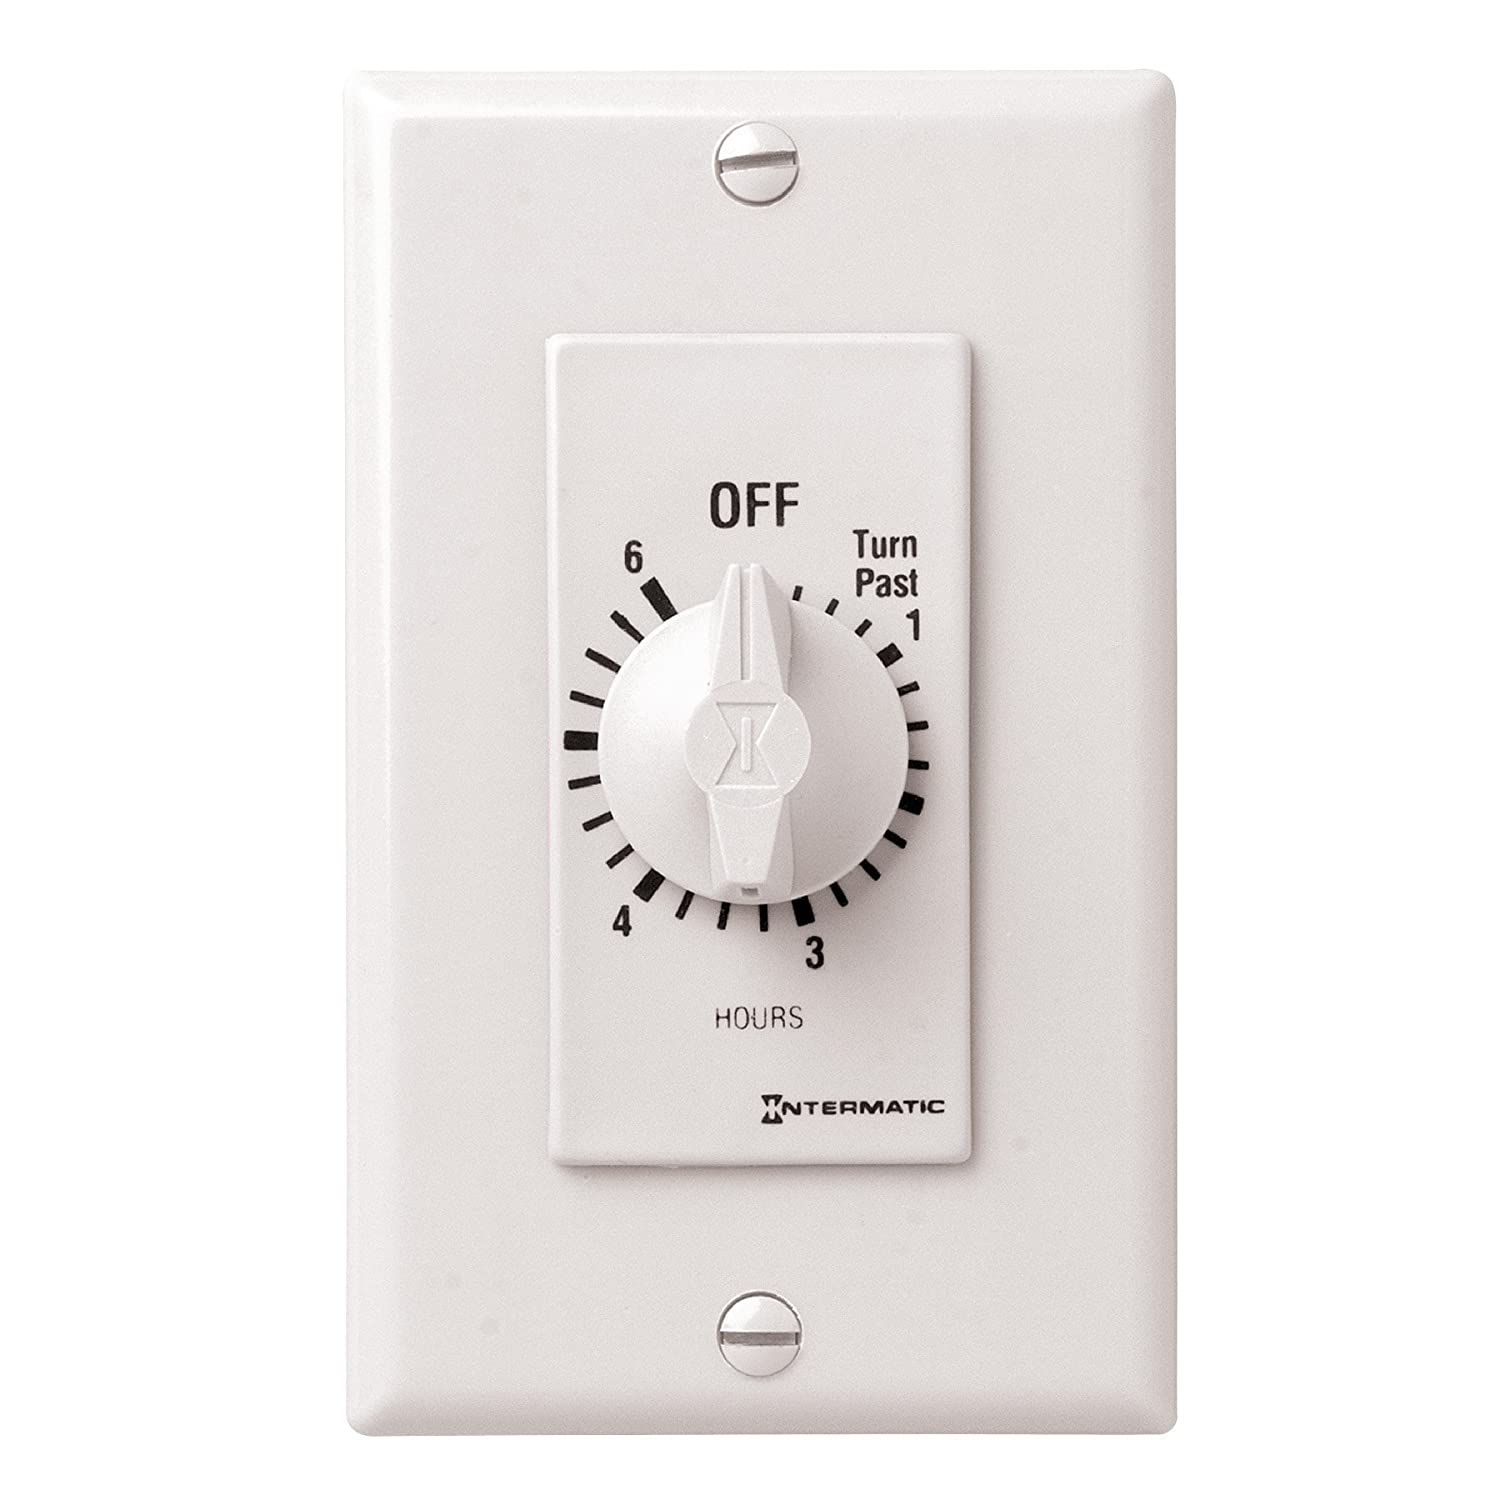 818cCNHP%2BVL._SL1500_ intermatic fd6hw 6 hour spring loaded auto off wall timer for fans  at gsmportal.co